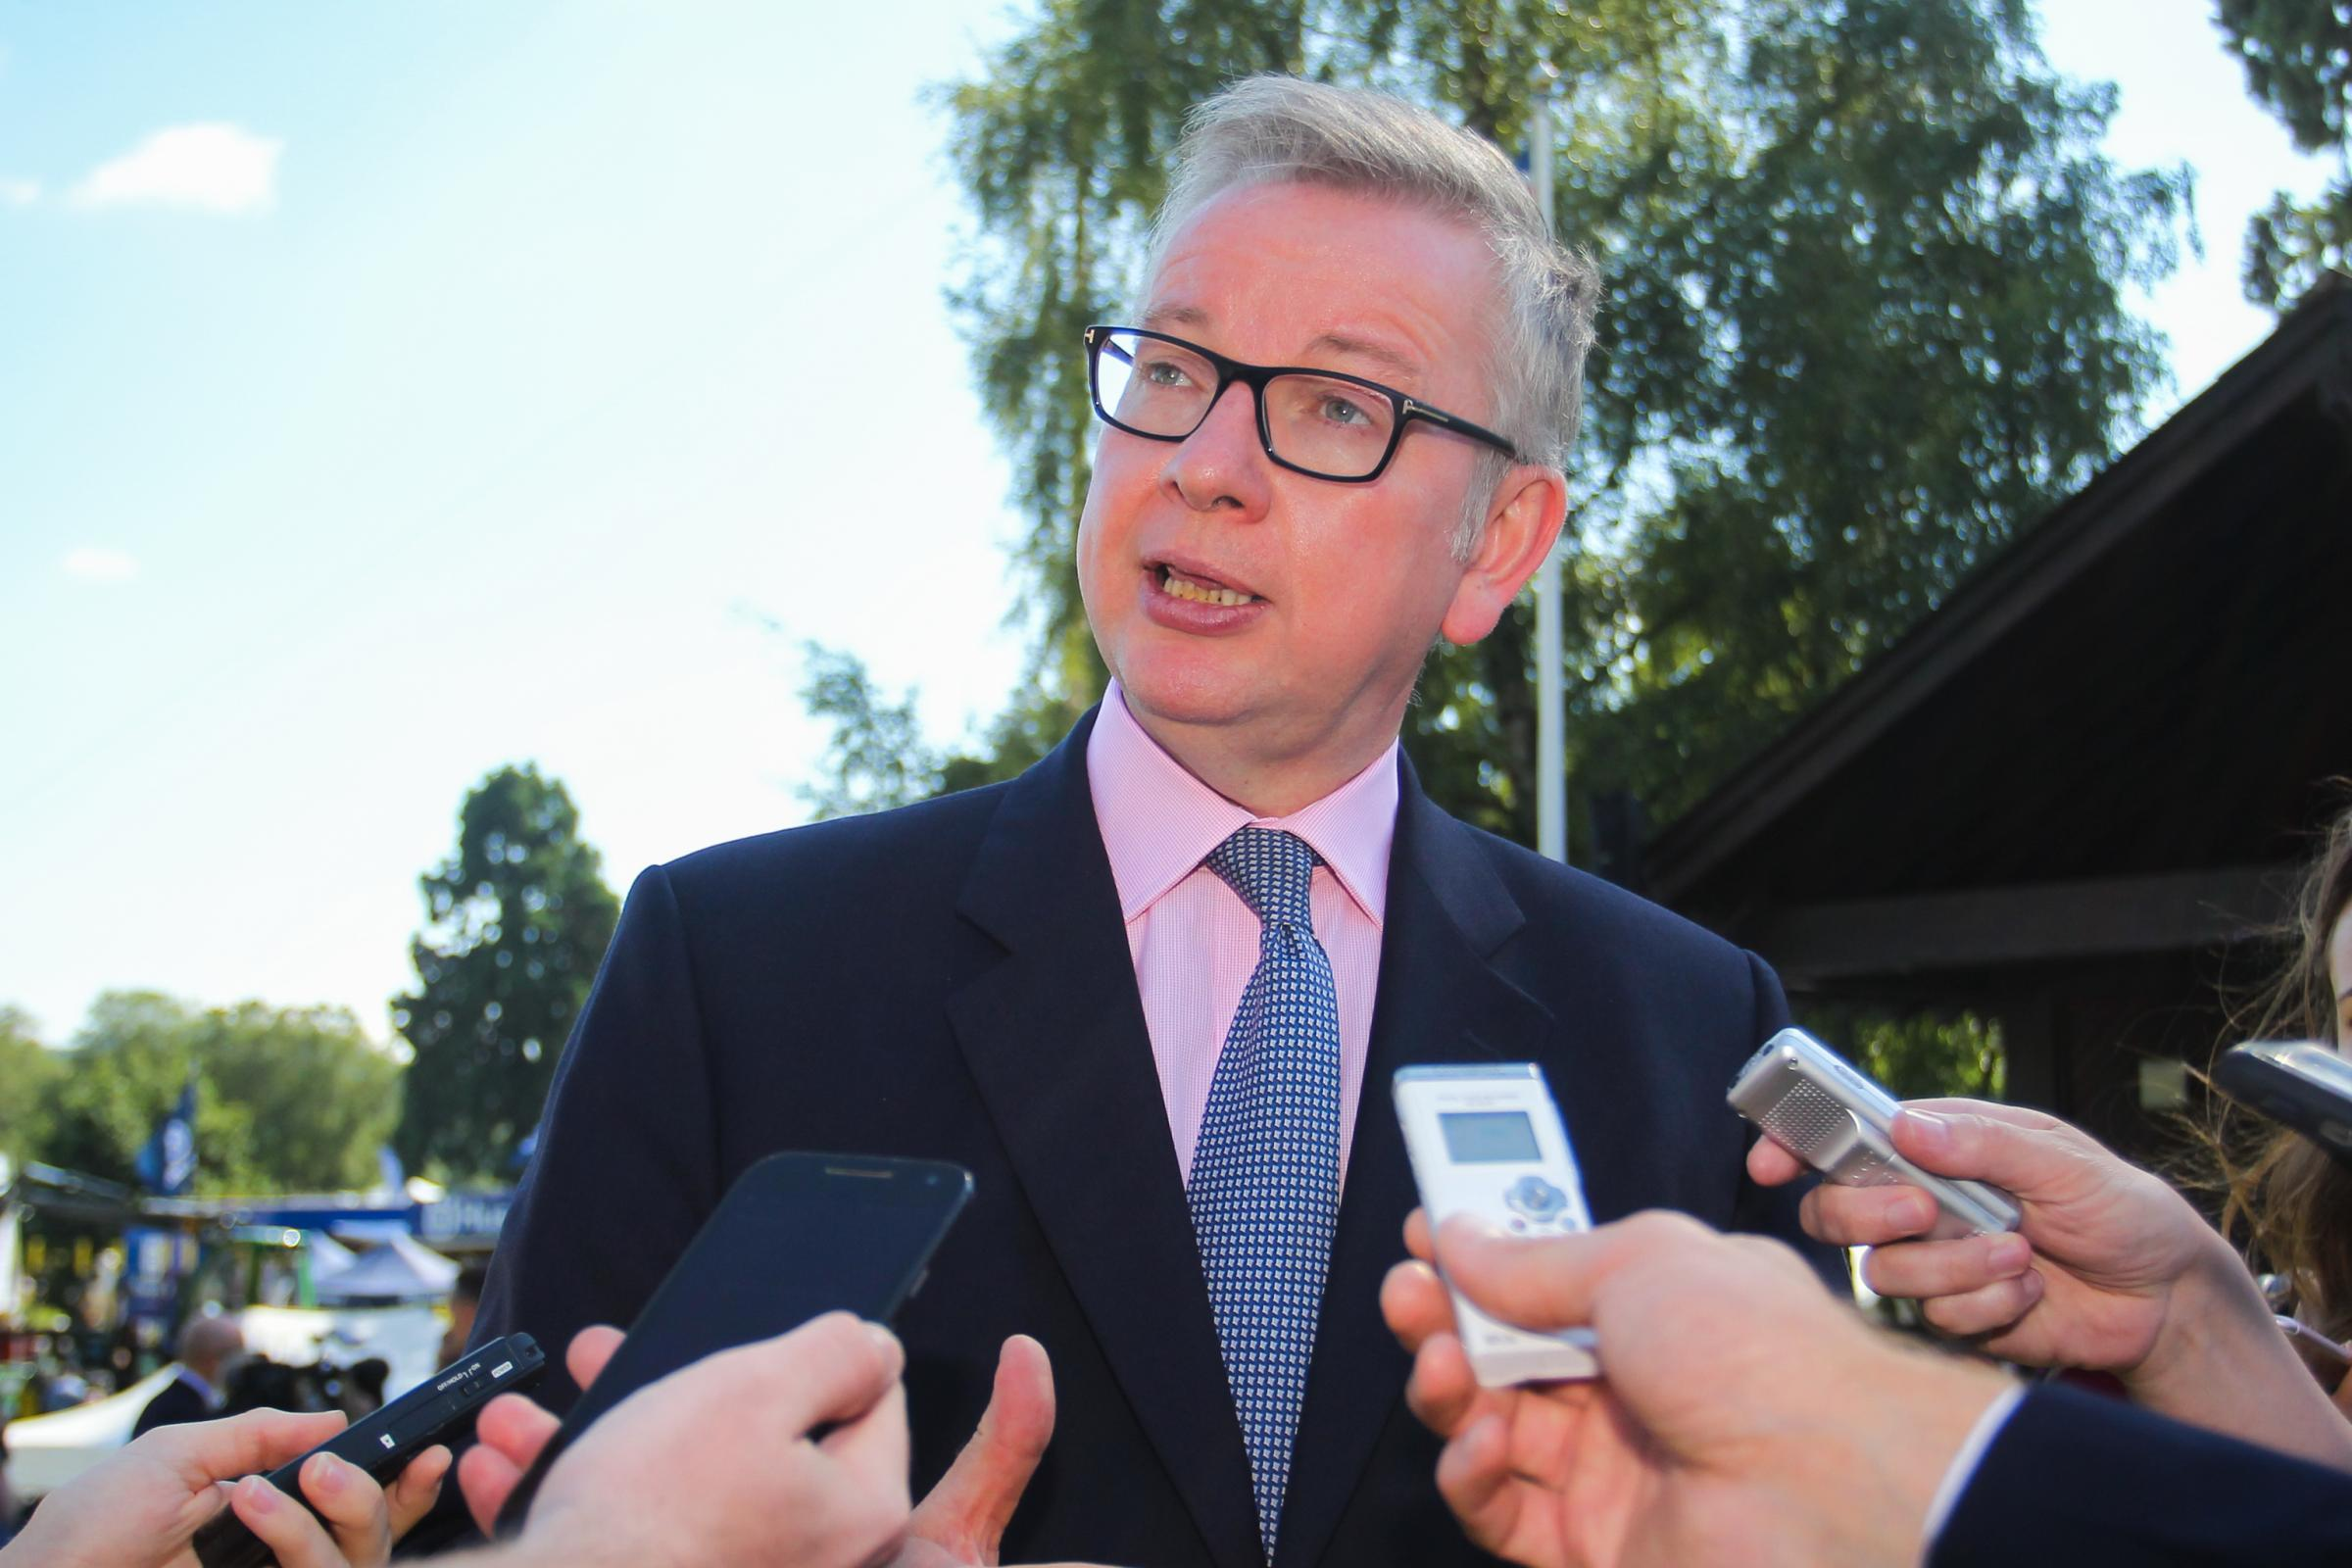 Michael Gove has drafted legislation for post-Brexit farming (Chris Brown)